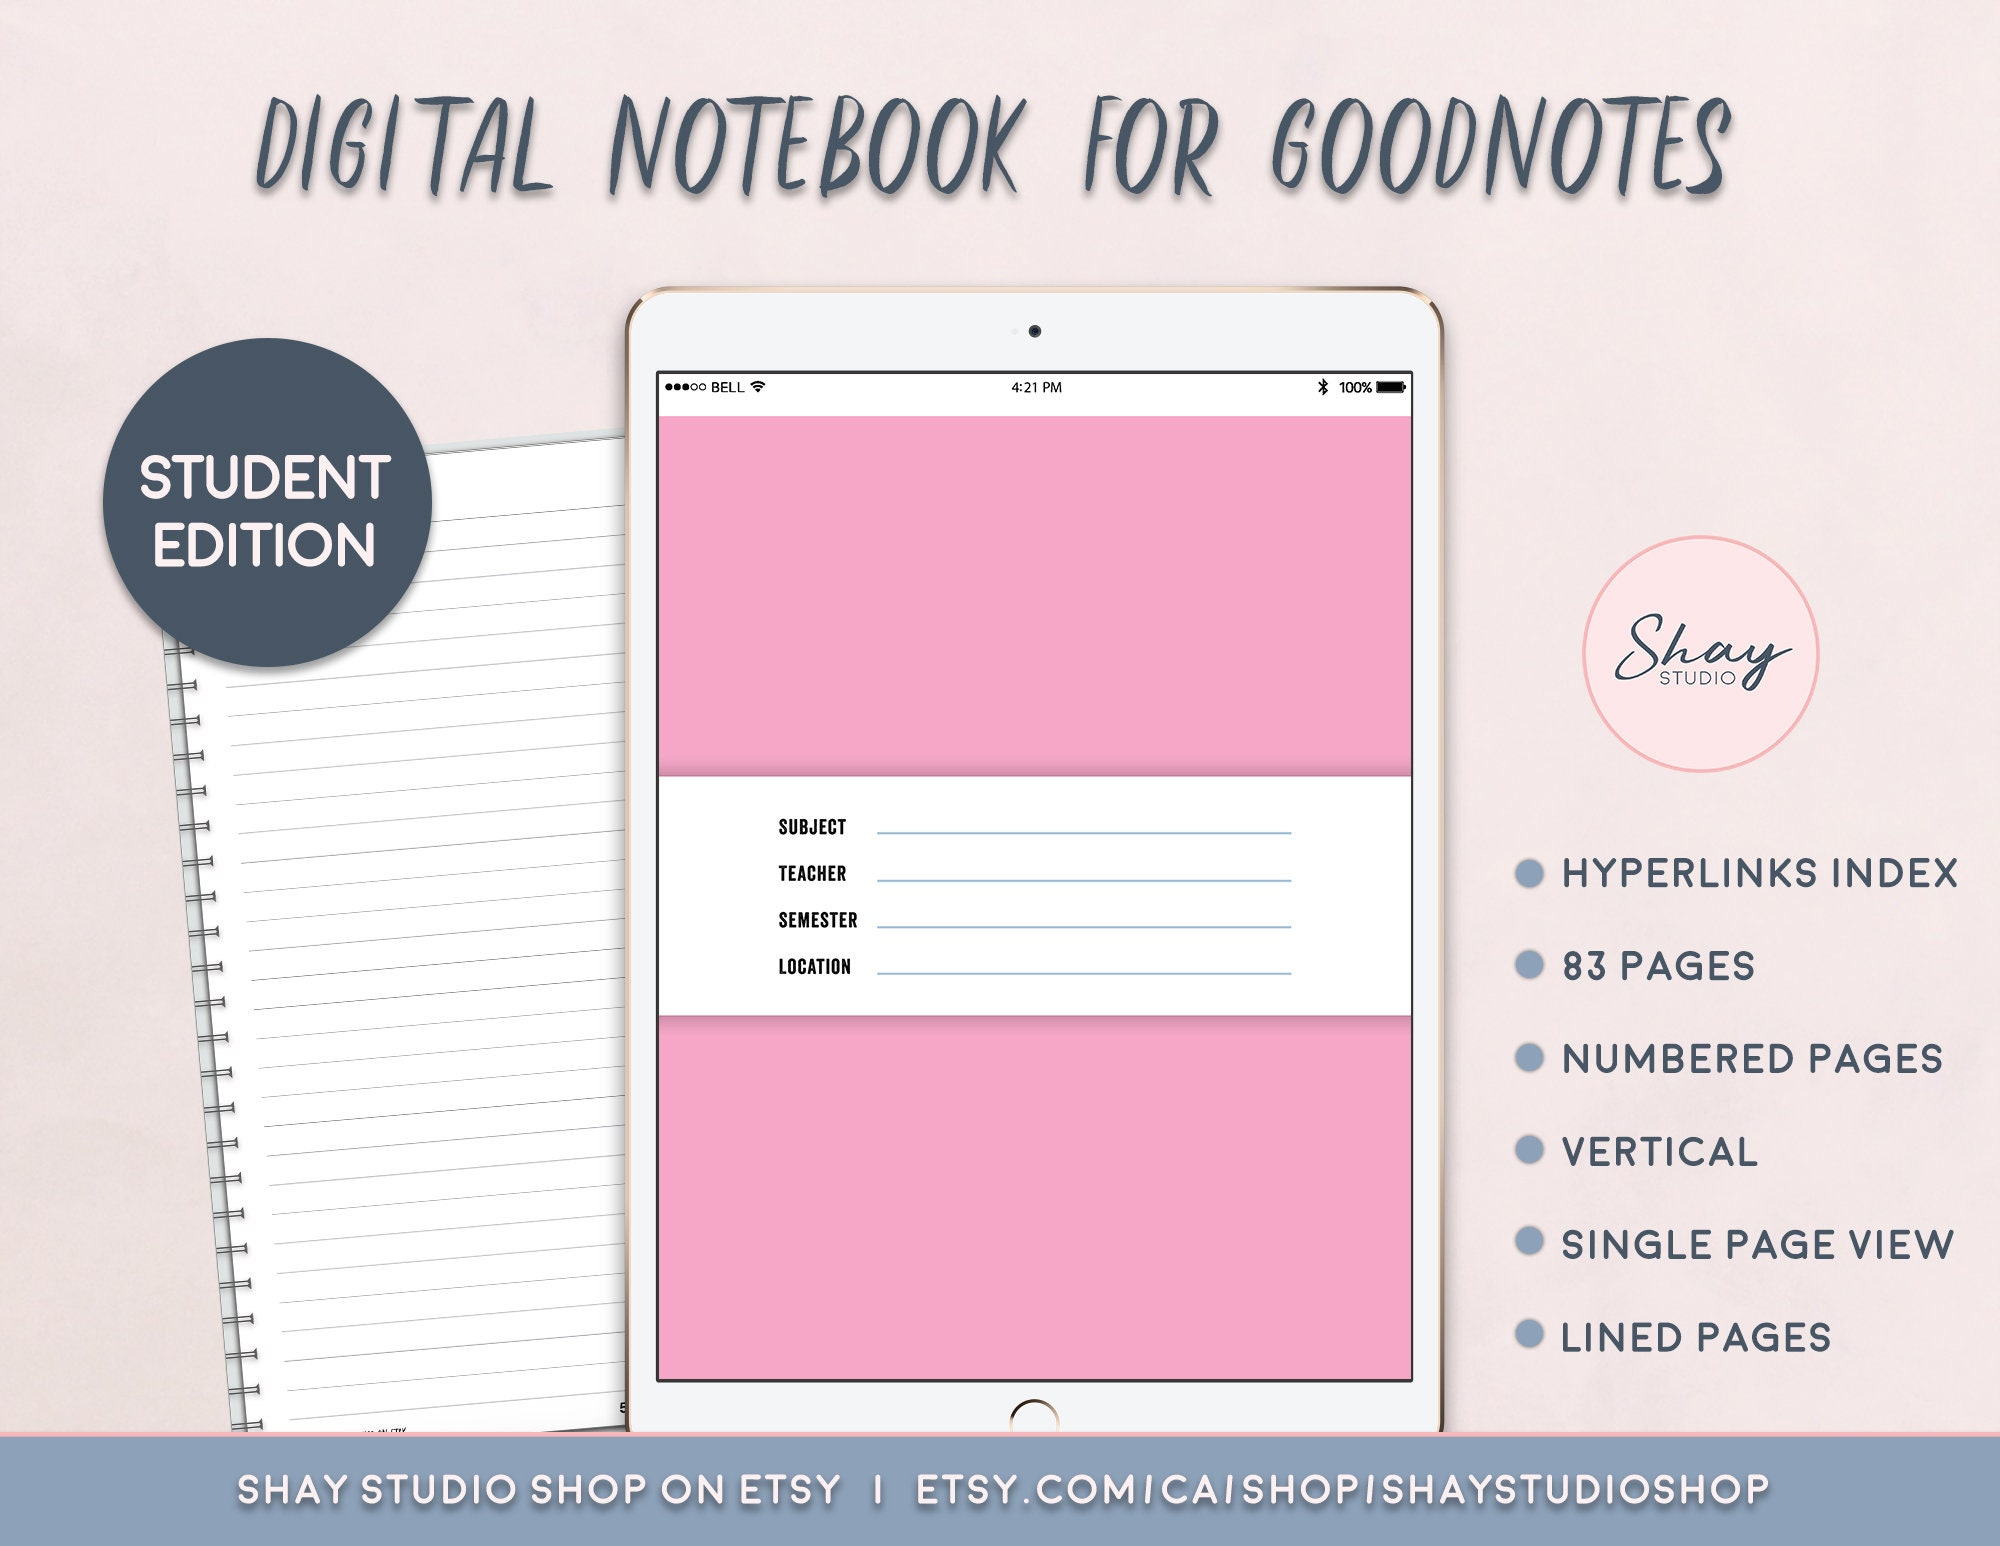 7 Digital Notebook Template, Digital Notebook, Subject Cover, Goodnote  template, Planner College Notebook, Vertical, Instant Download